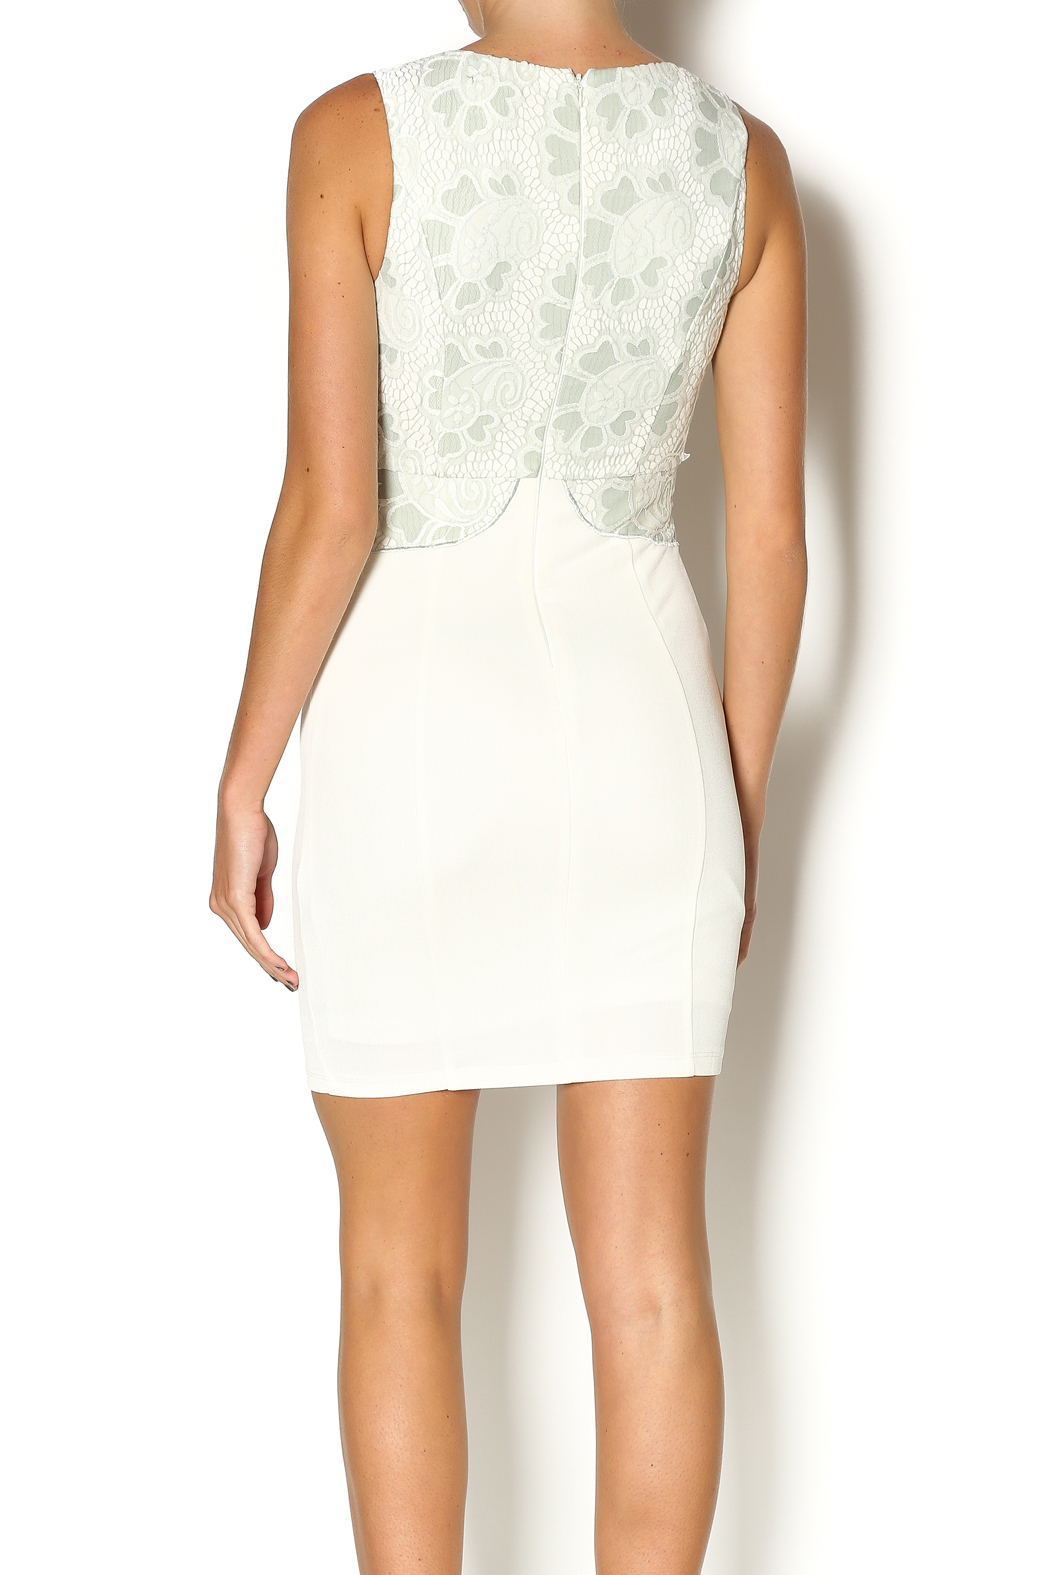 Abby & Taylor Sage Lace Top Dress - Back Cropped Image